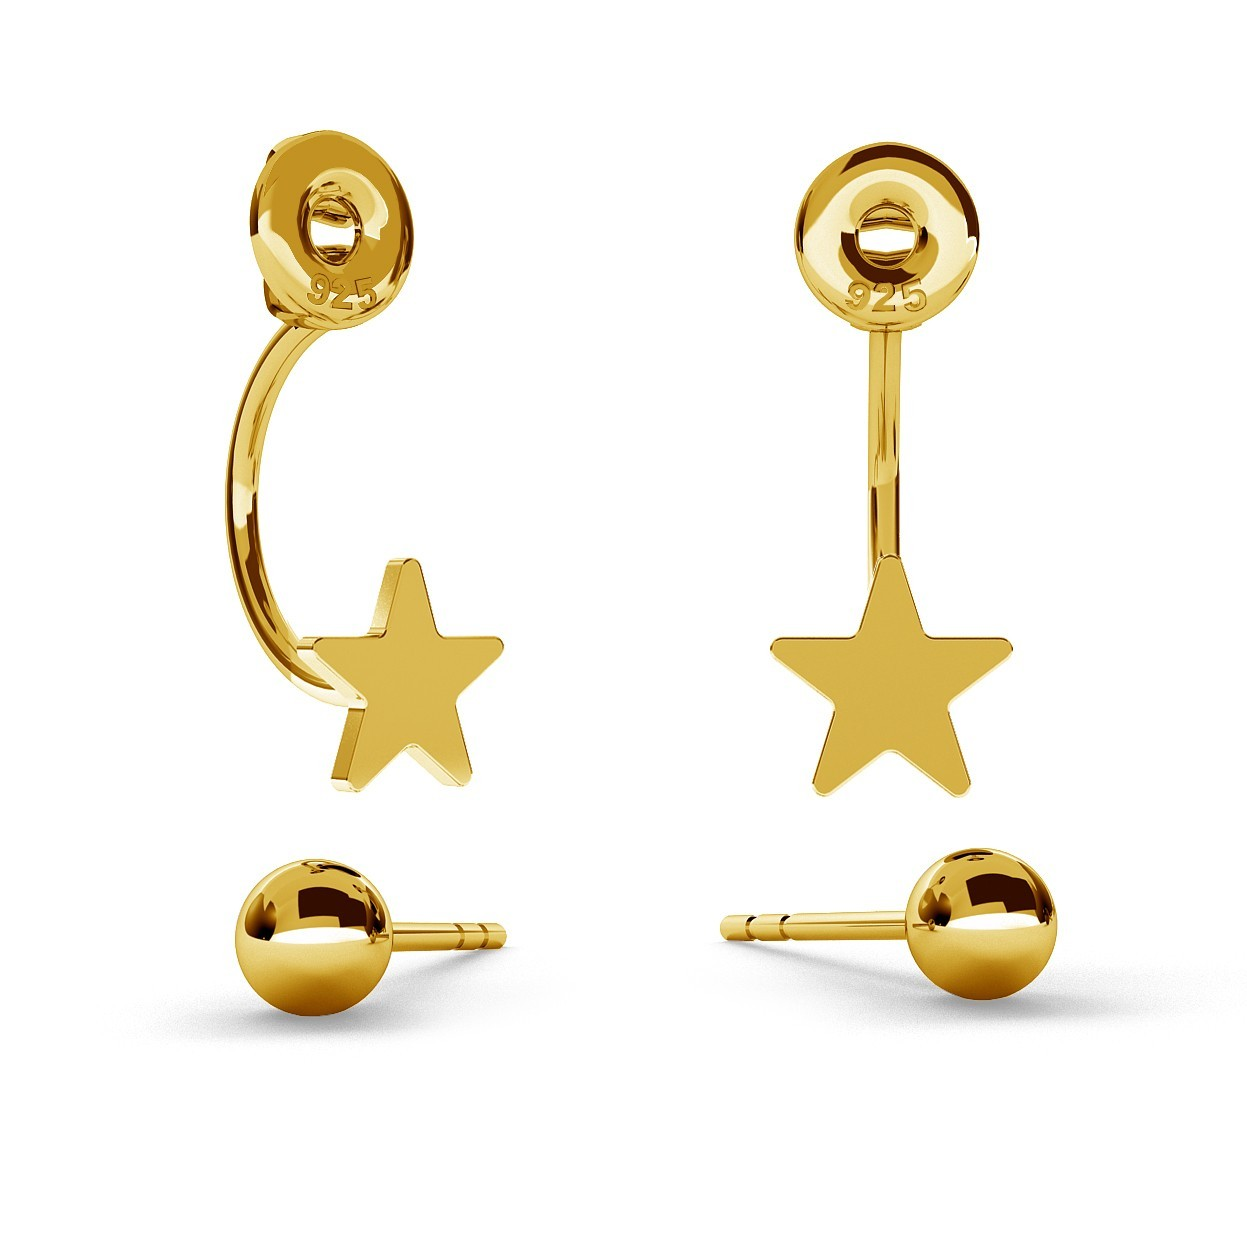 SWING EARRINGS BALL & STAR WITH ENGRAVE